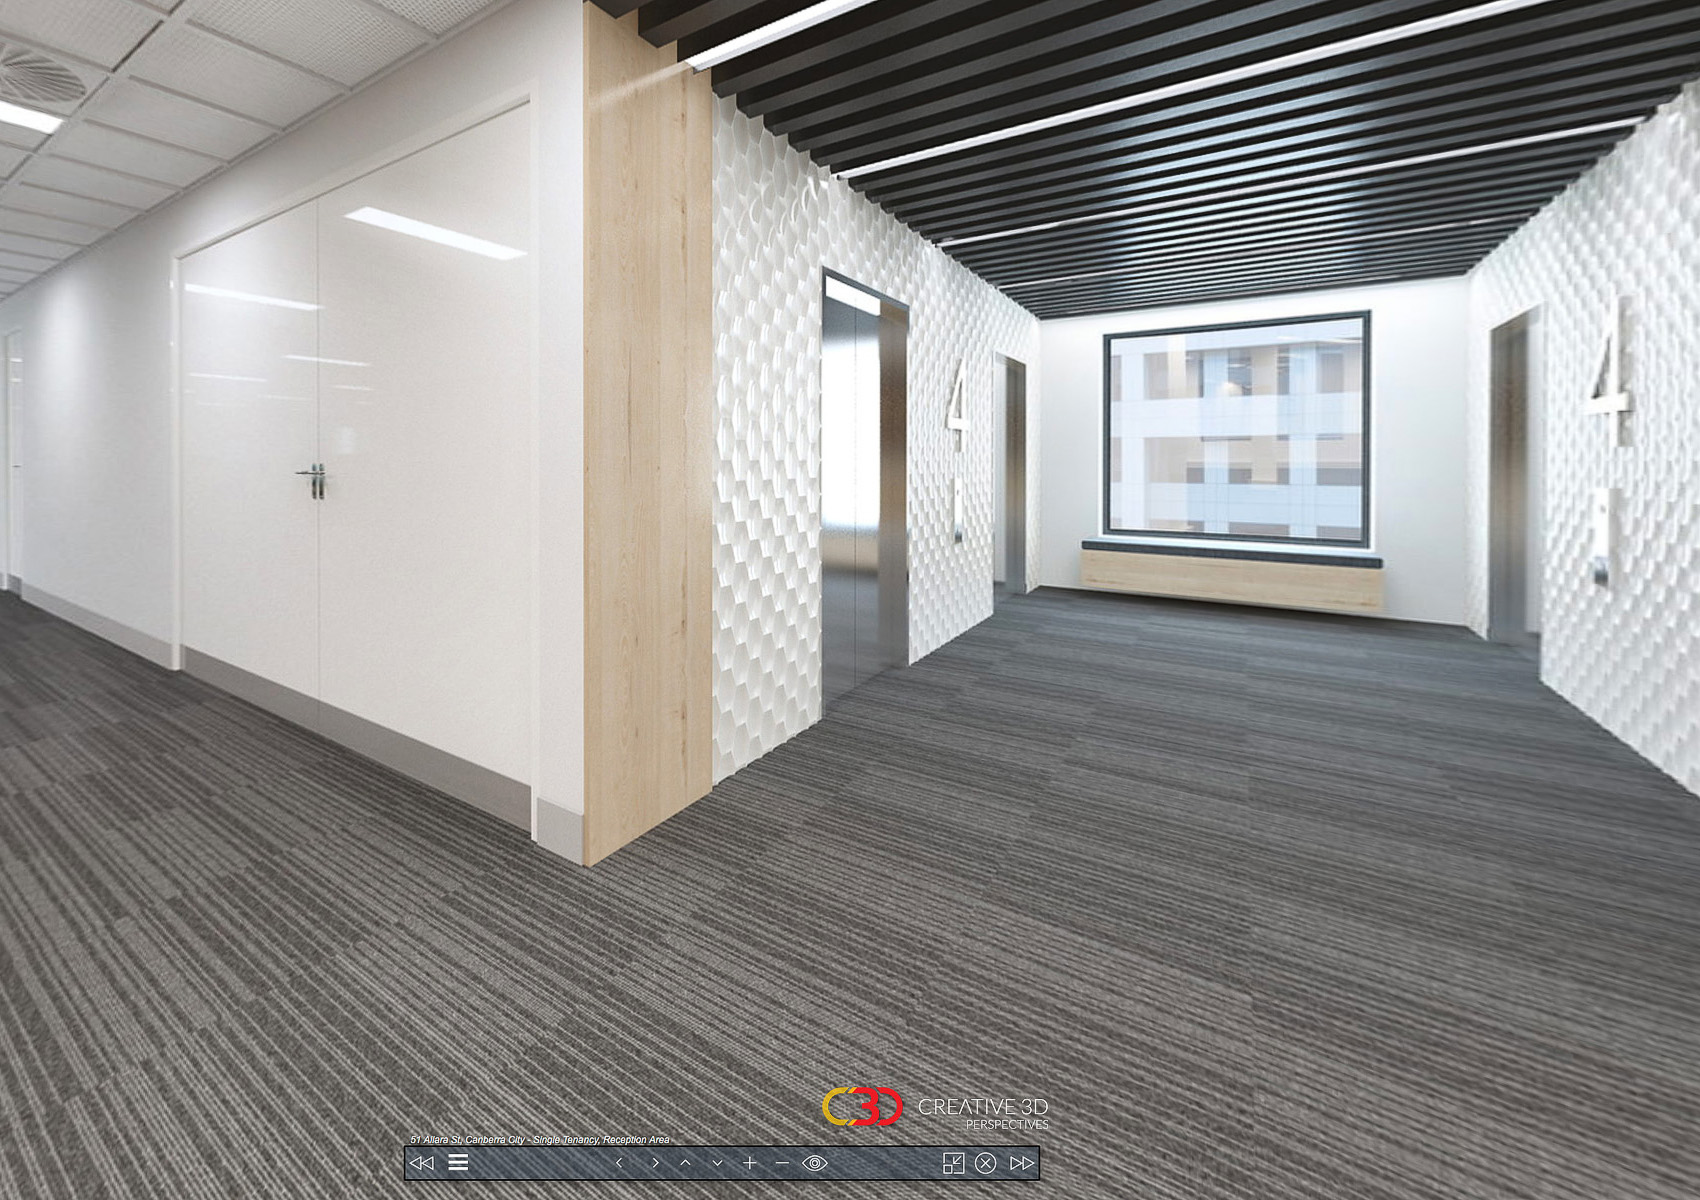 Lifts area of this modern office fitout design, cladding shown on walls, Creative 3D Perspective interior office screenshot from a virtual tour